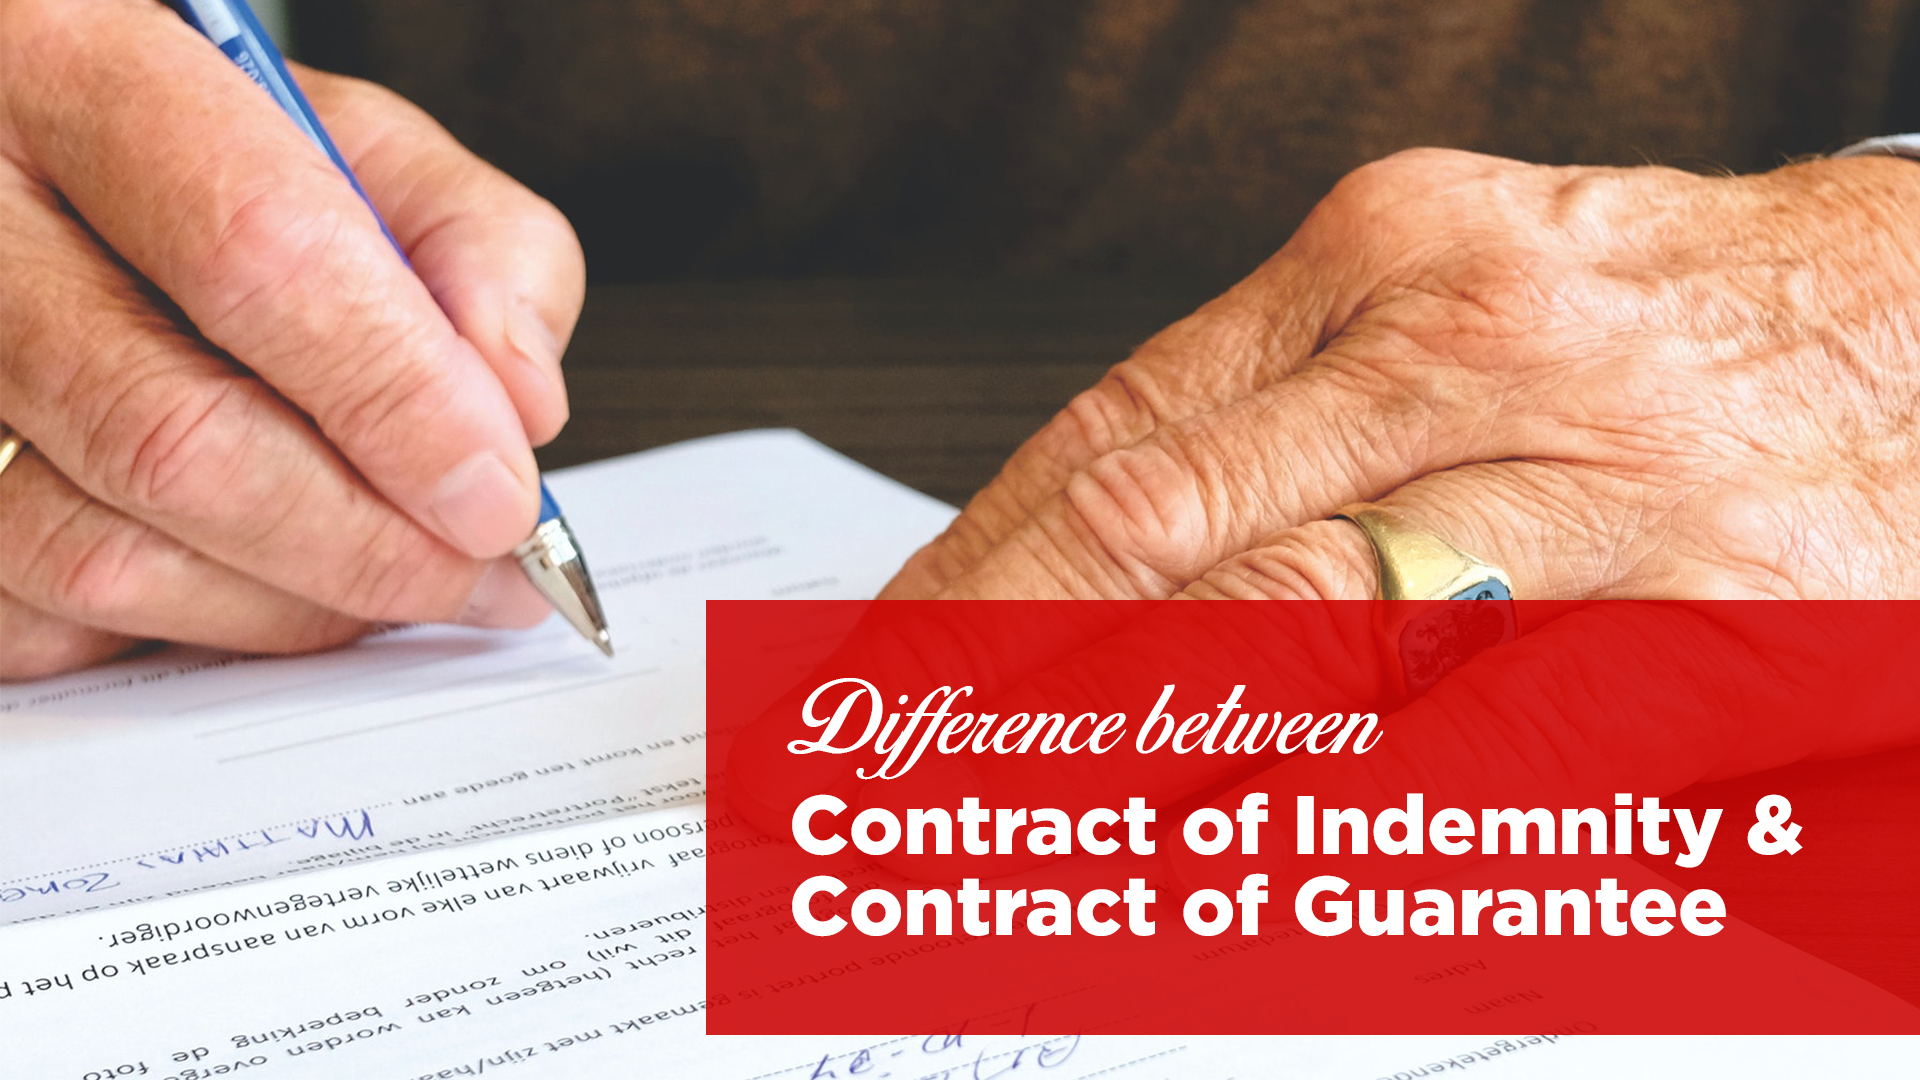 Differnce between contract of Indemnity and Contract of Guarantee